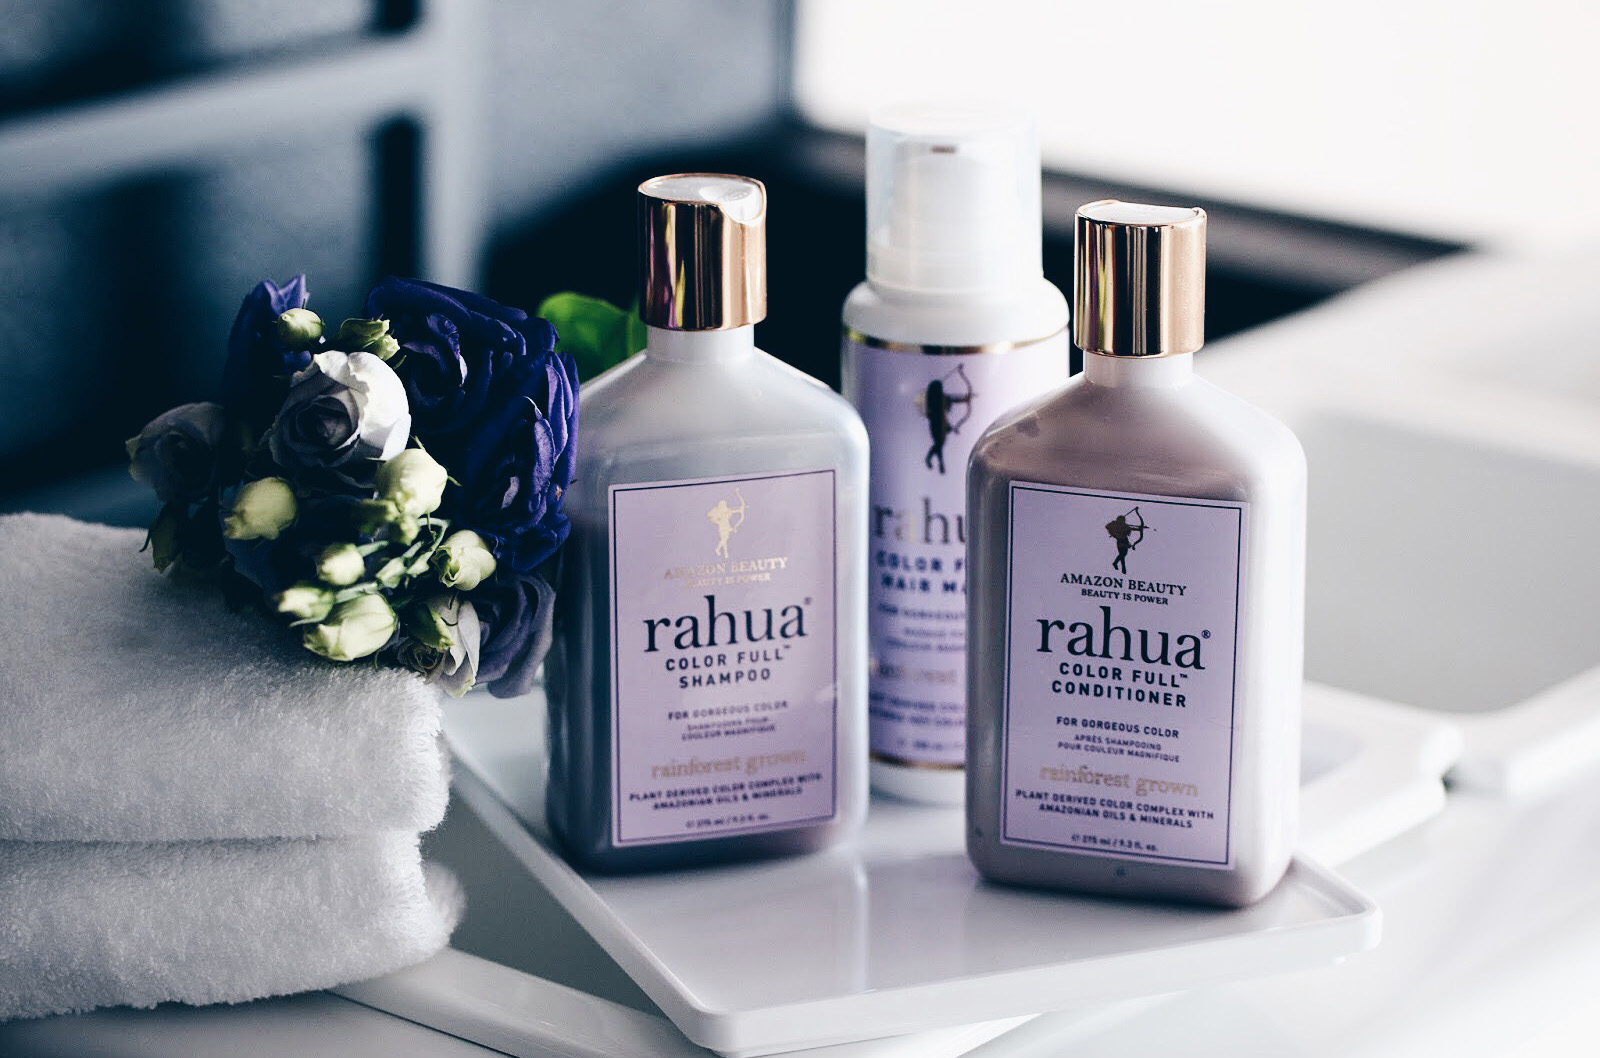 rahua color full shampooing apres shampooing masque cheveux colorés bio avis test